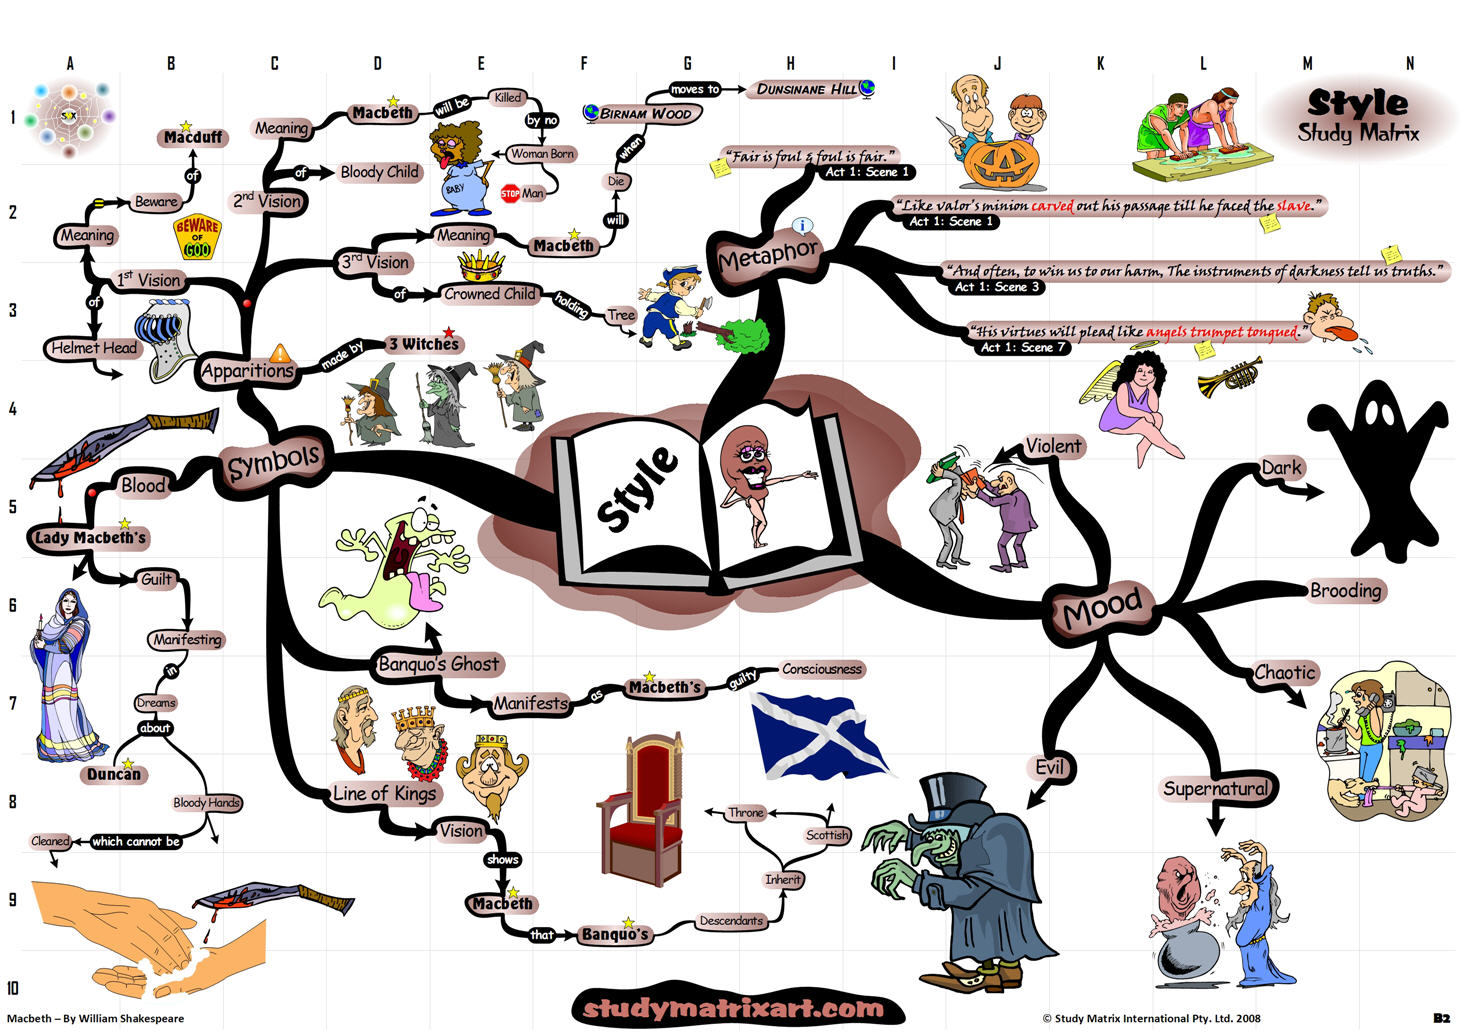 Mindmap of Macbeth style analysis